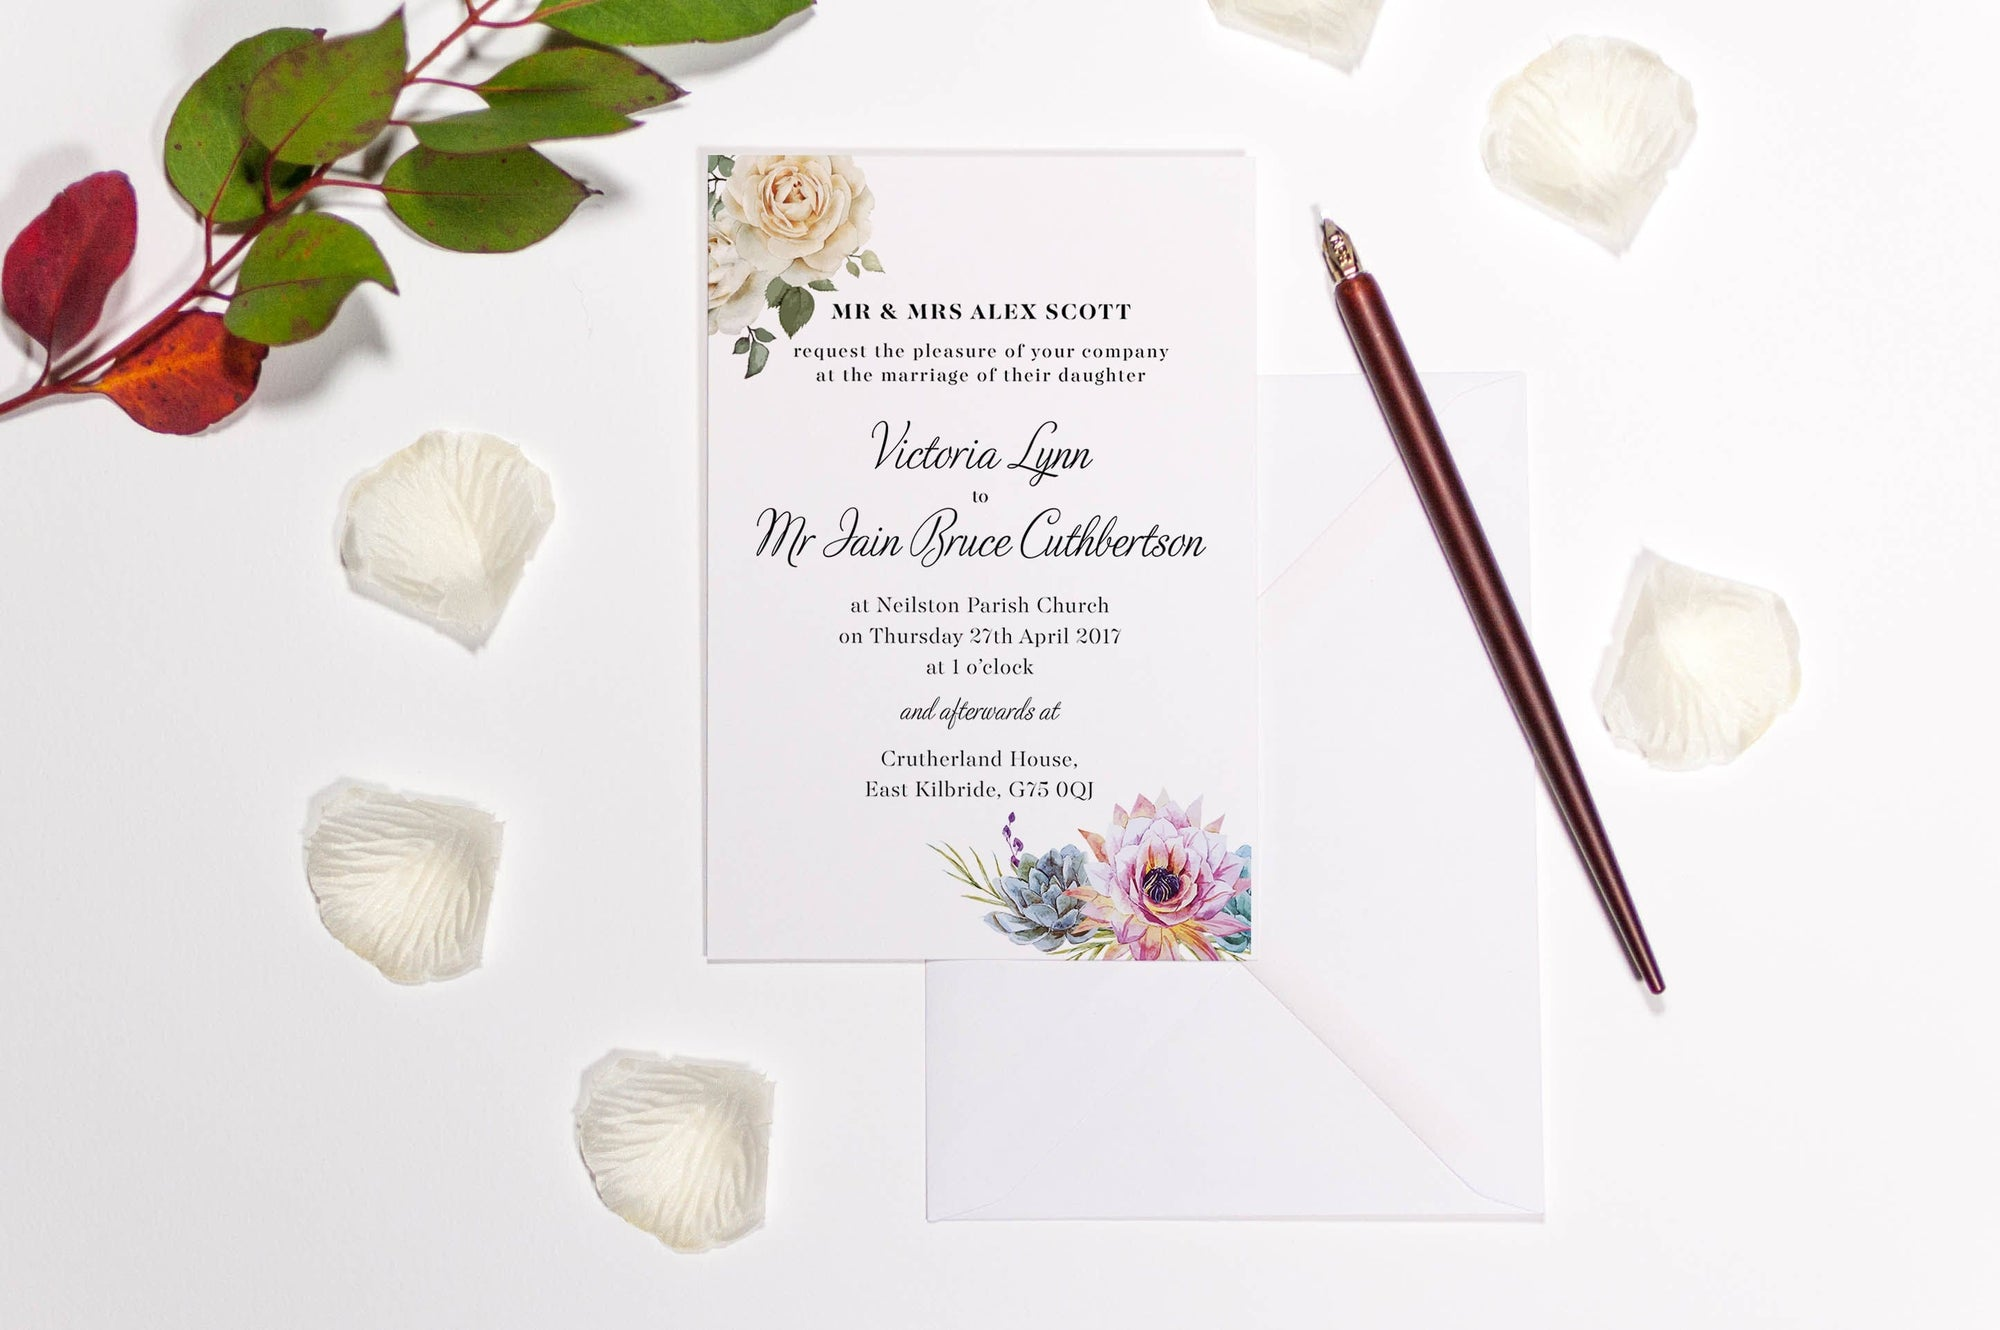 luxuryweddinginvitationsbycombossa HD Printed Wedding Invitations Botanic Pink Rose Wedding Invitation, HD Digital Print